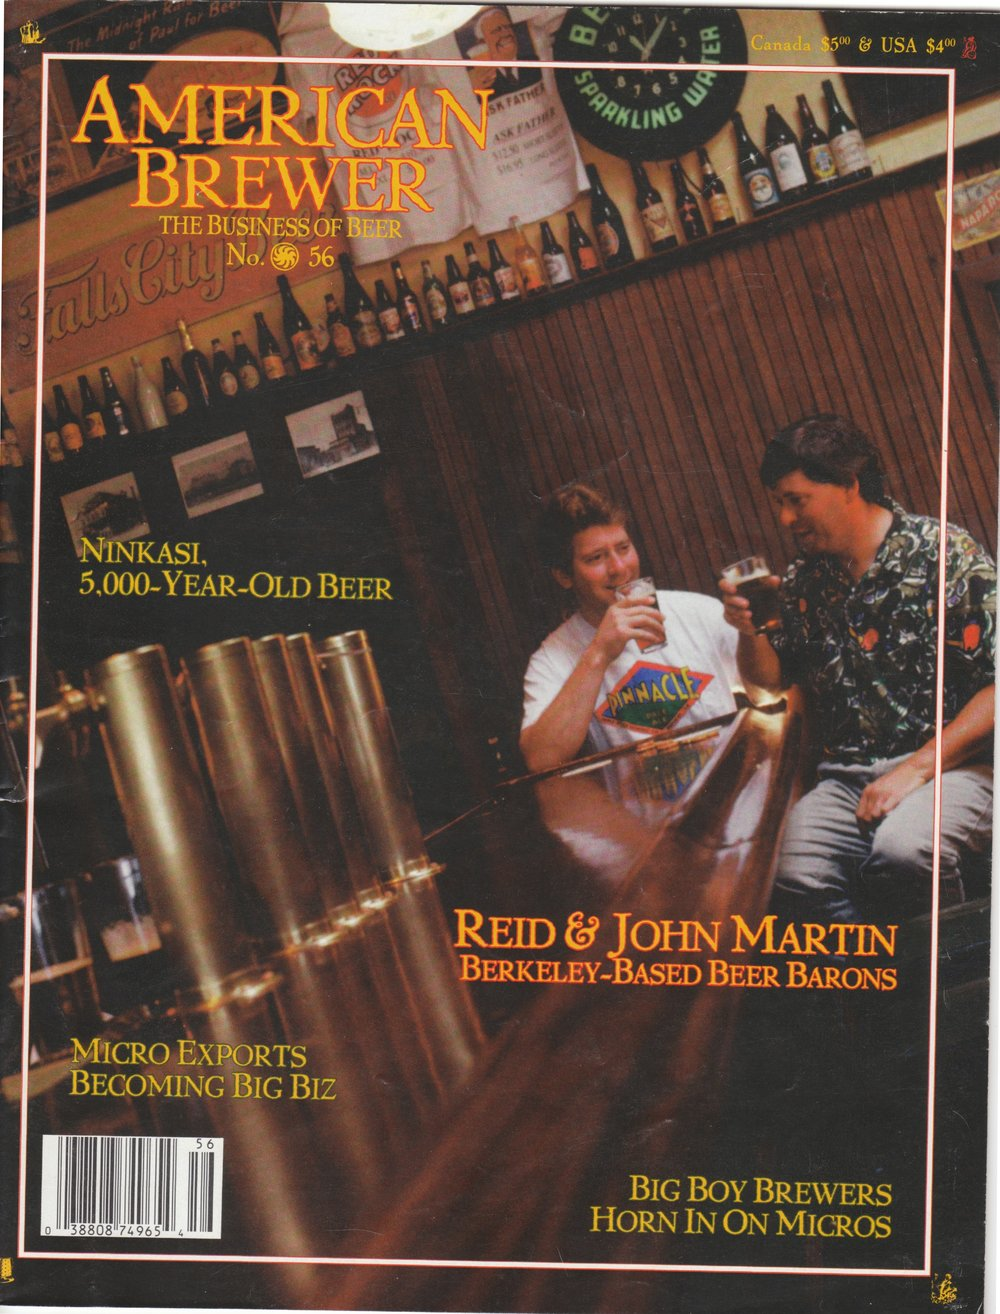 AmericanBrewerCover.jpeg